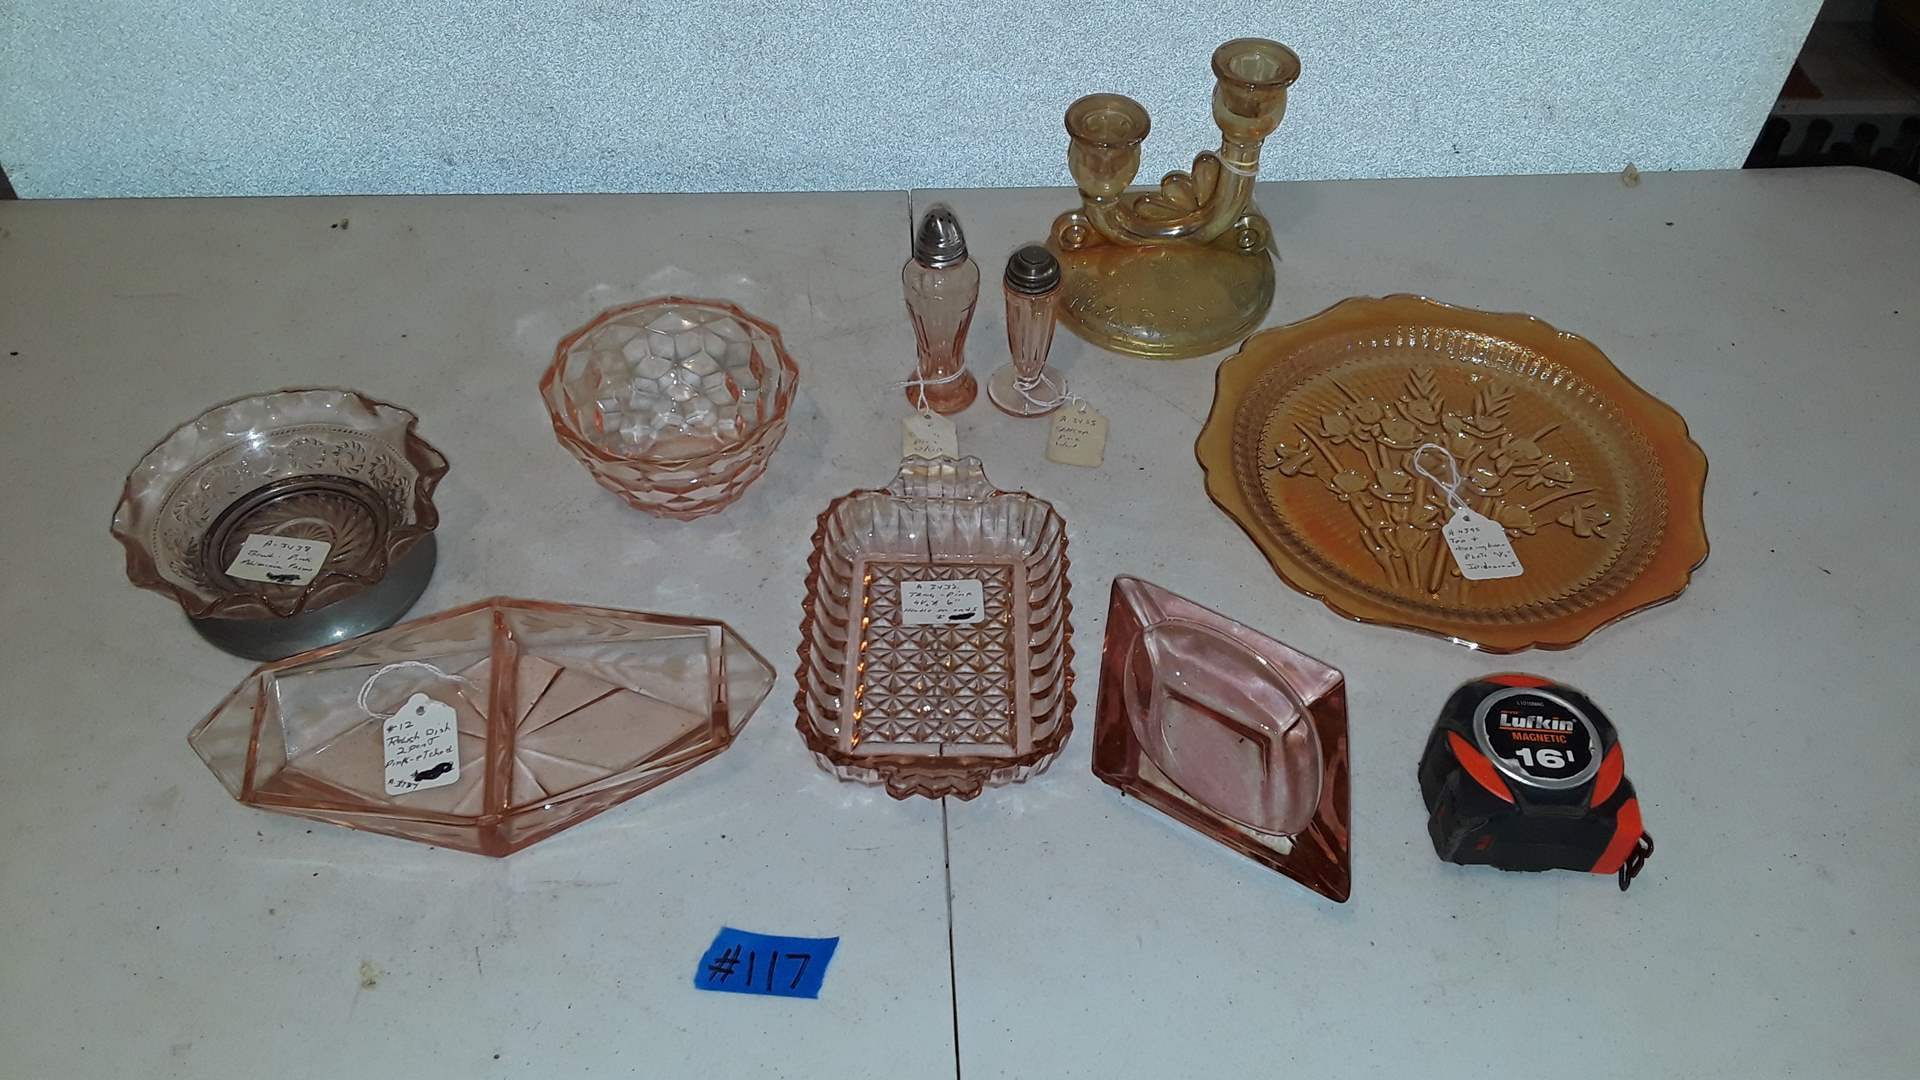 Lot # 117 ANTIQUE PINK DEPRESSION GLASS AND COLLECTABLE DISHWARE, IRIS AND HERRING BONE PLATE